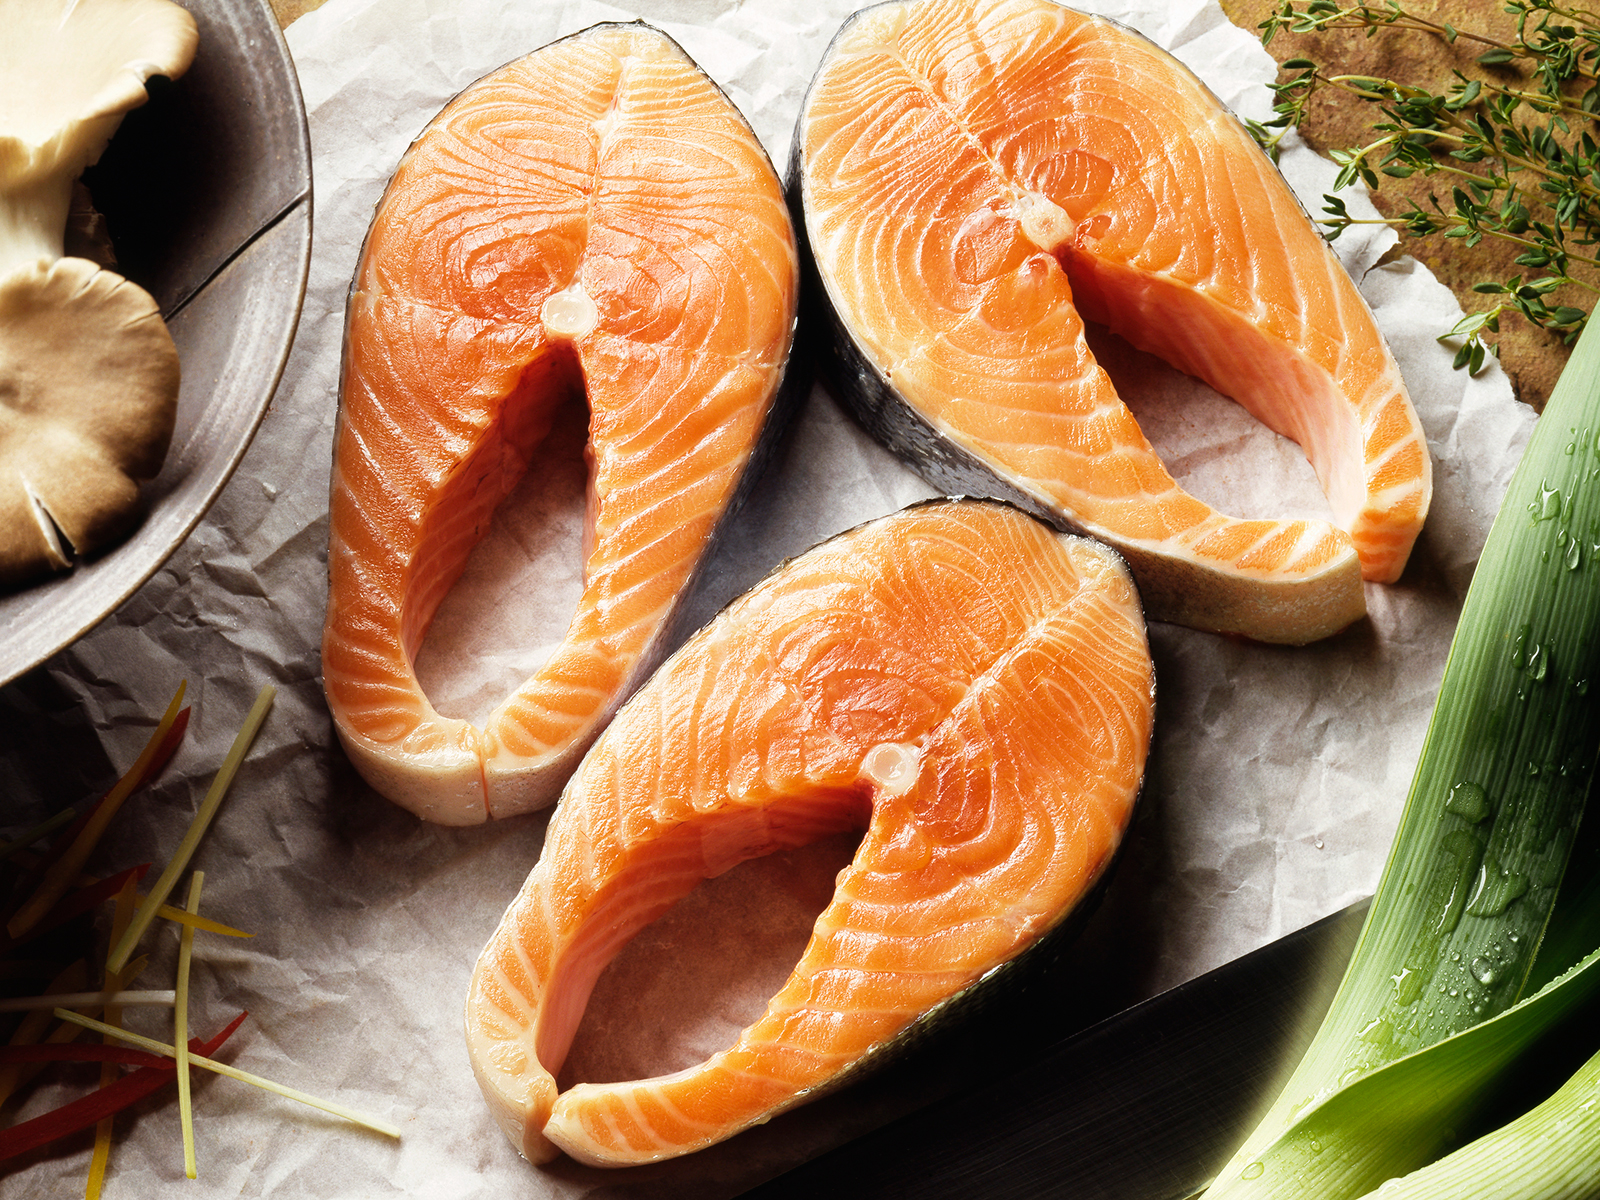 Salmon-Only Fast Food Chain to Open in China